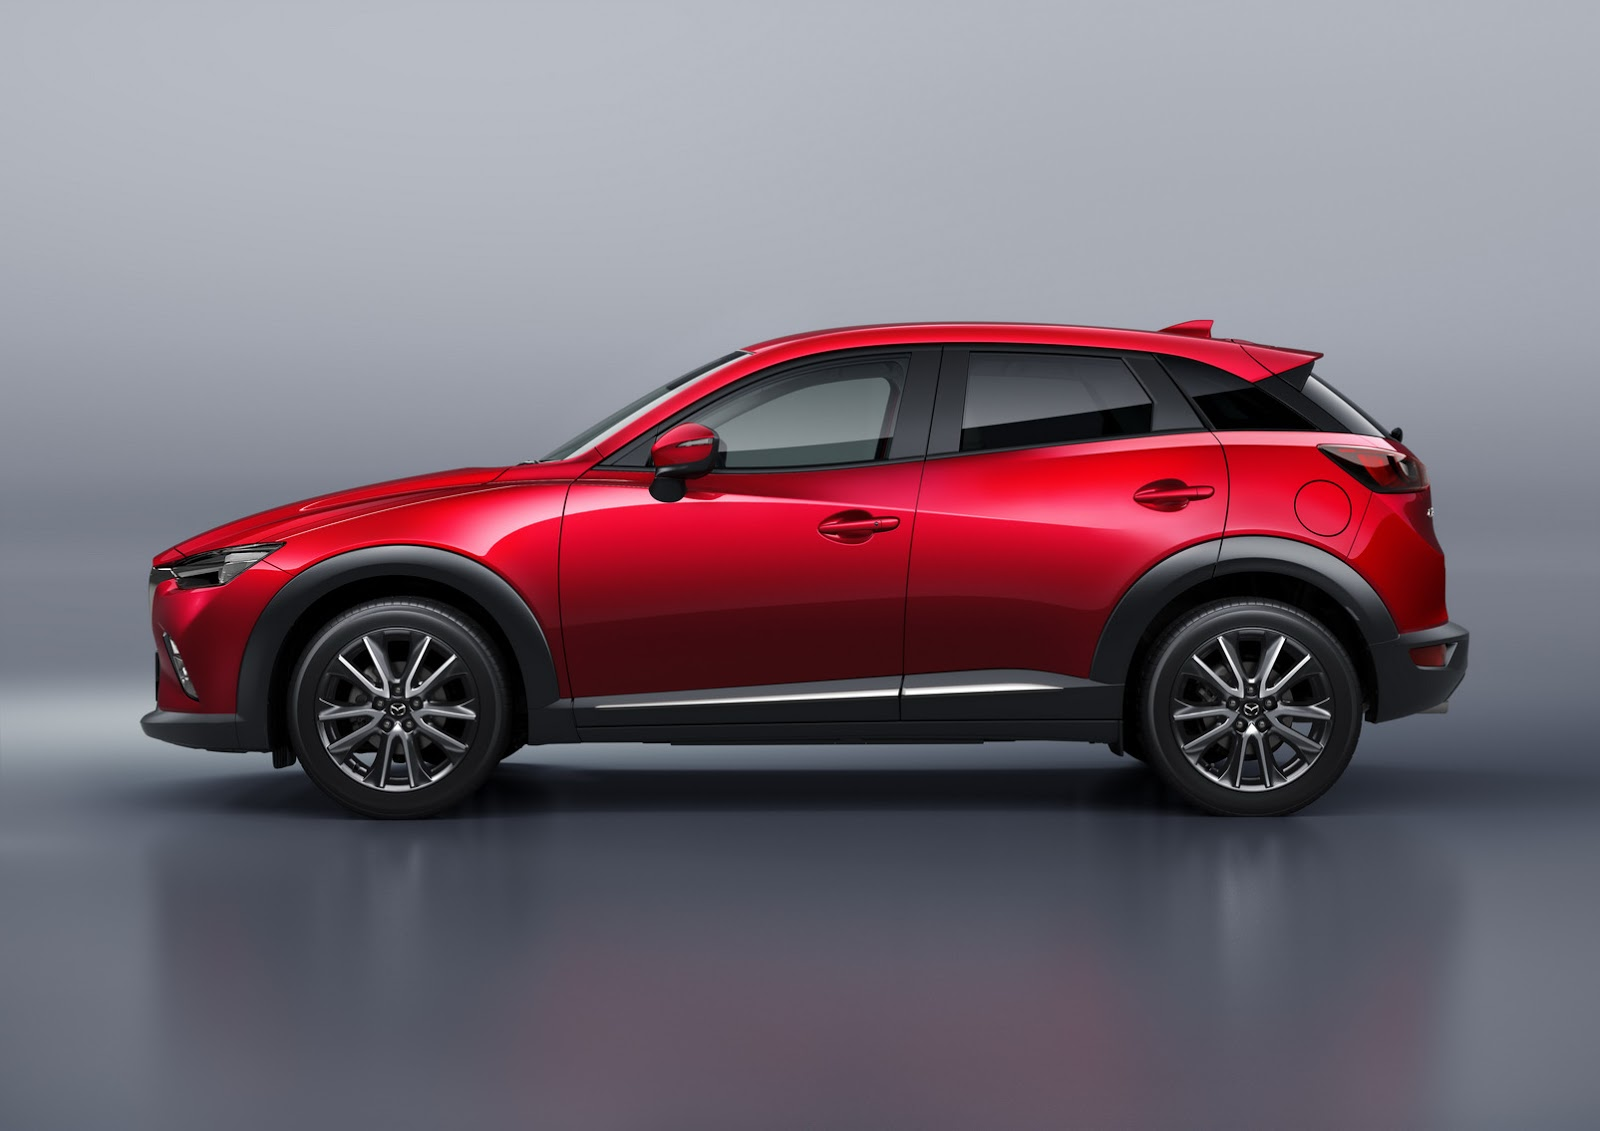 Mazda Cx 5 Cargo Space Dimensions >> 2016 Mazda CX-3 is a Crispy Looking Small CUV [50 Photos ...